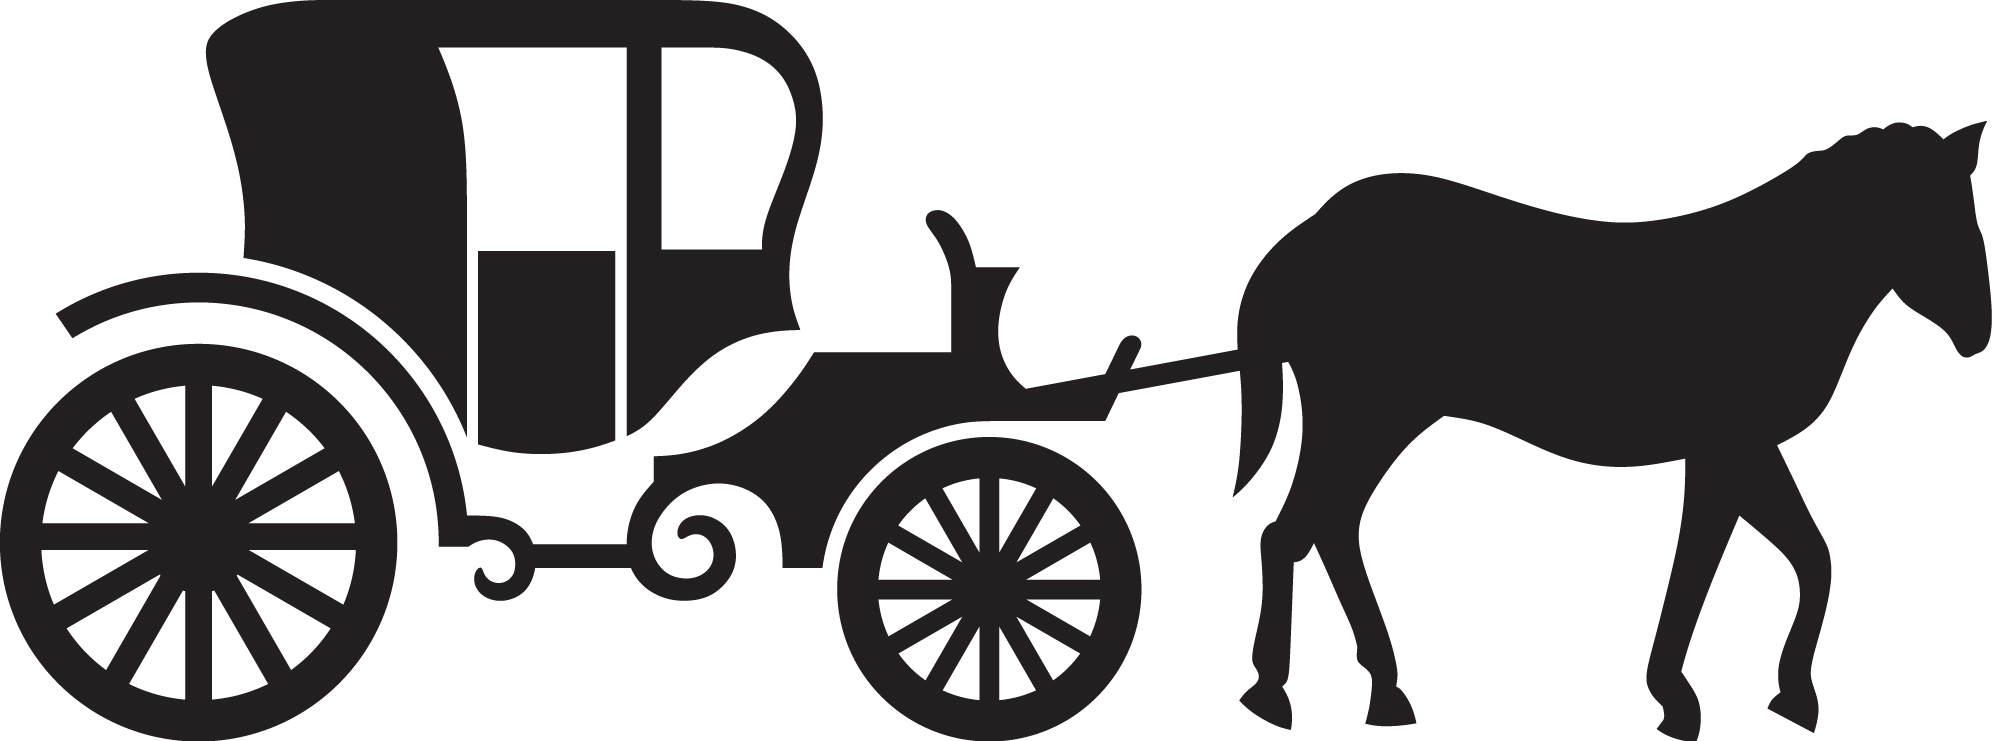 Carriage clipart carriage ride. Horse drawn pencil and